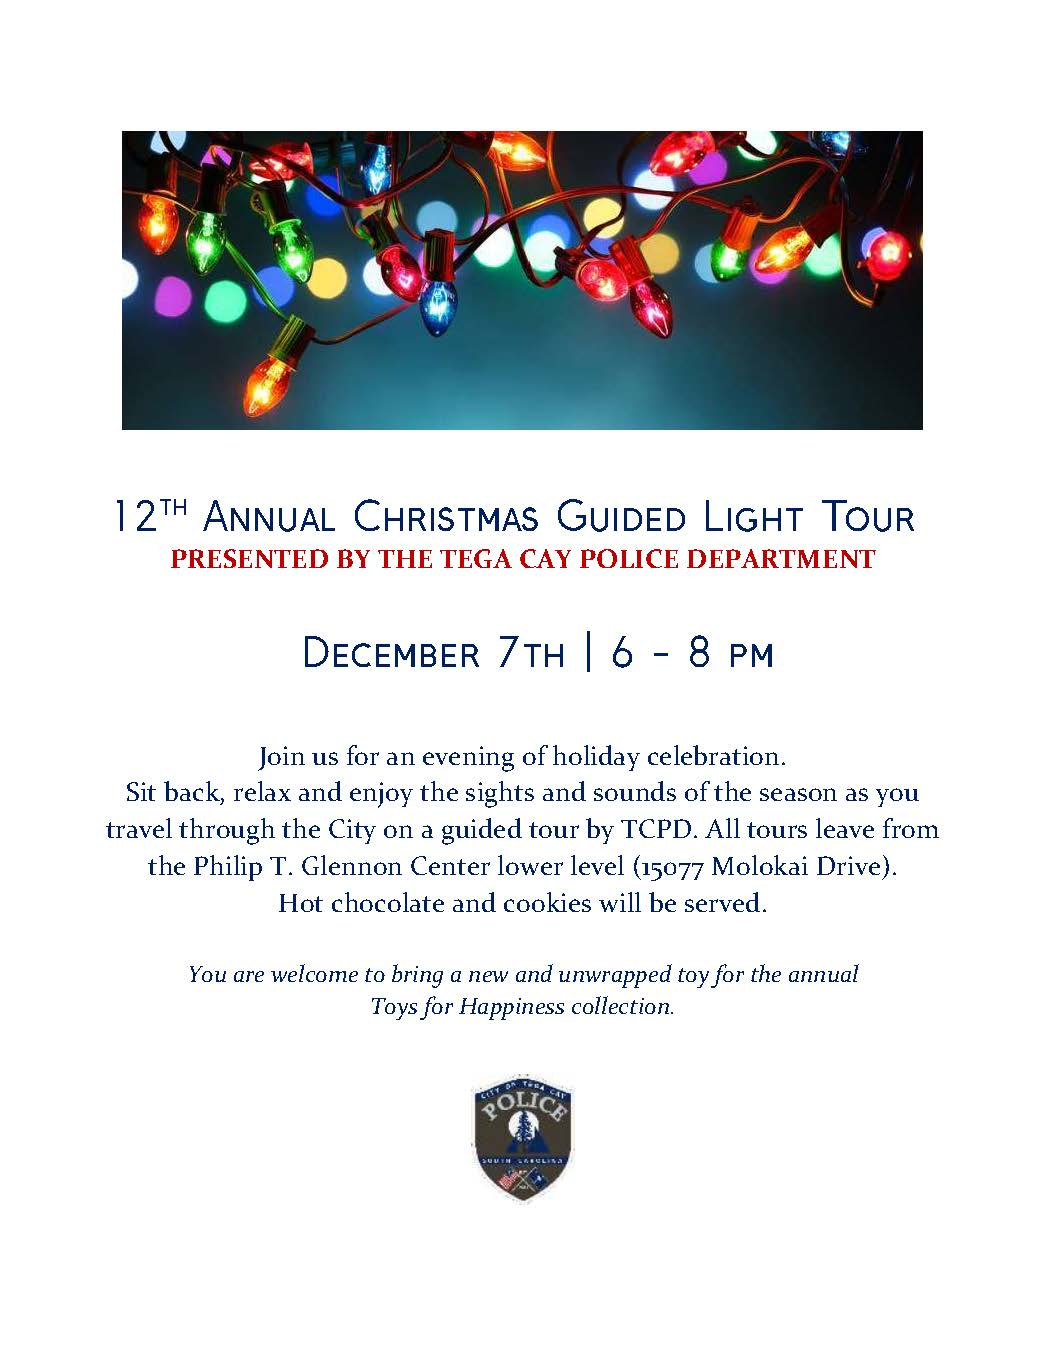 12th Annual Guided Light Tour 2017